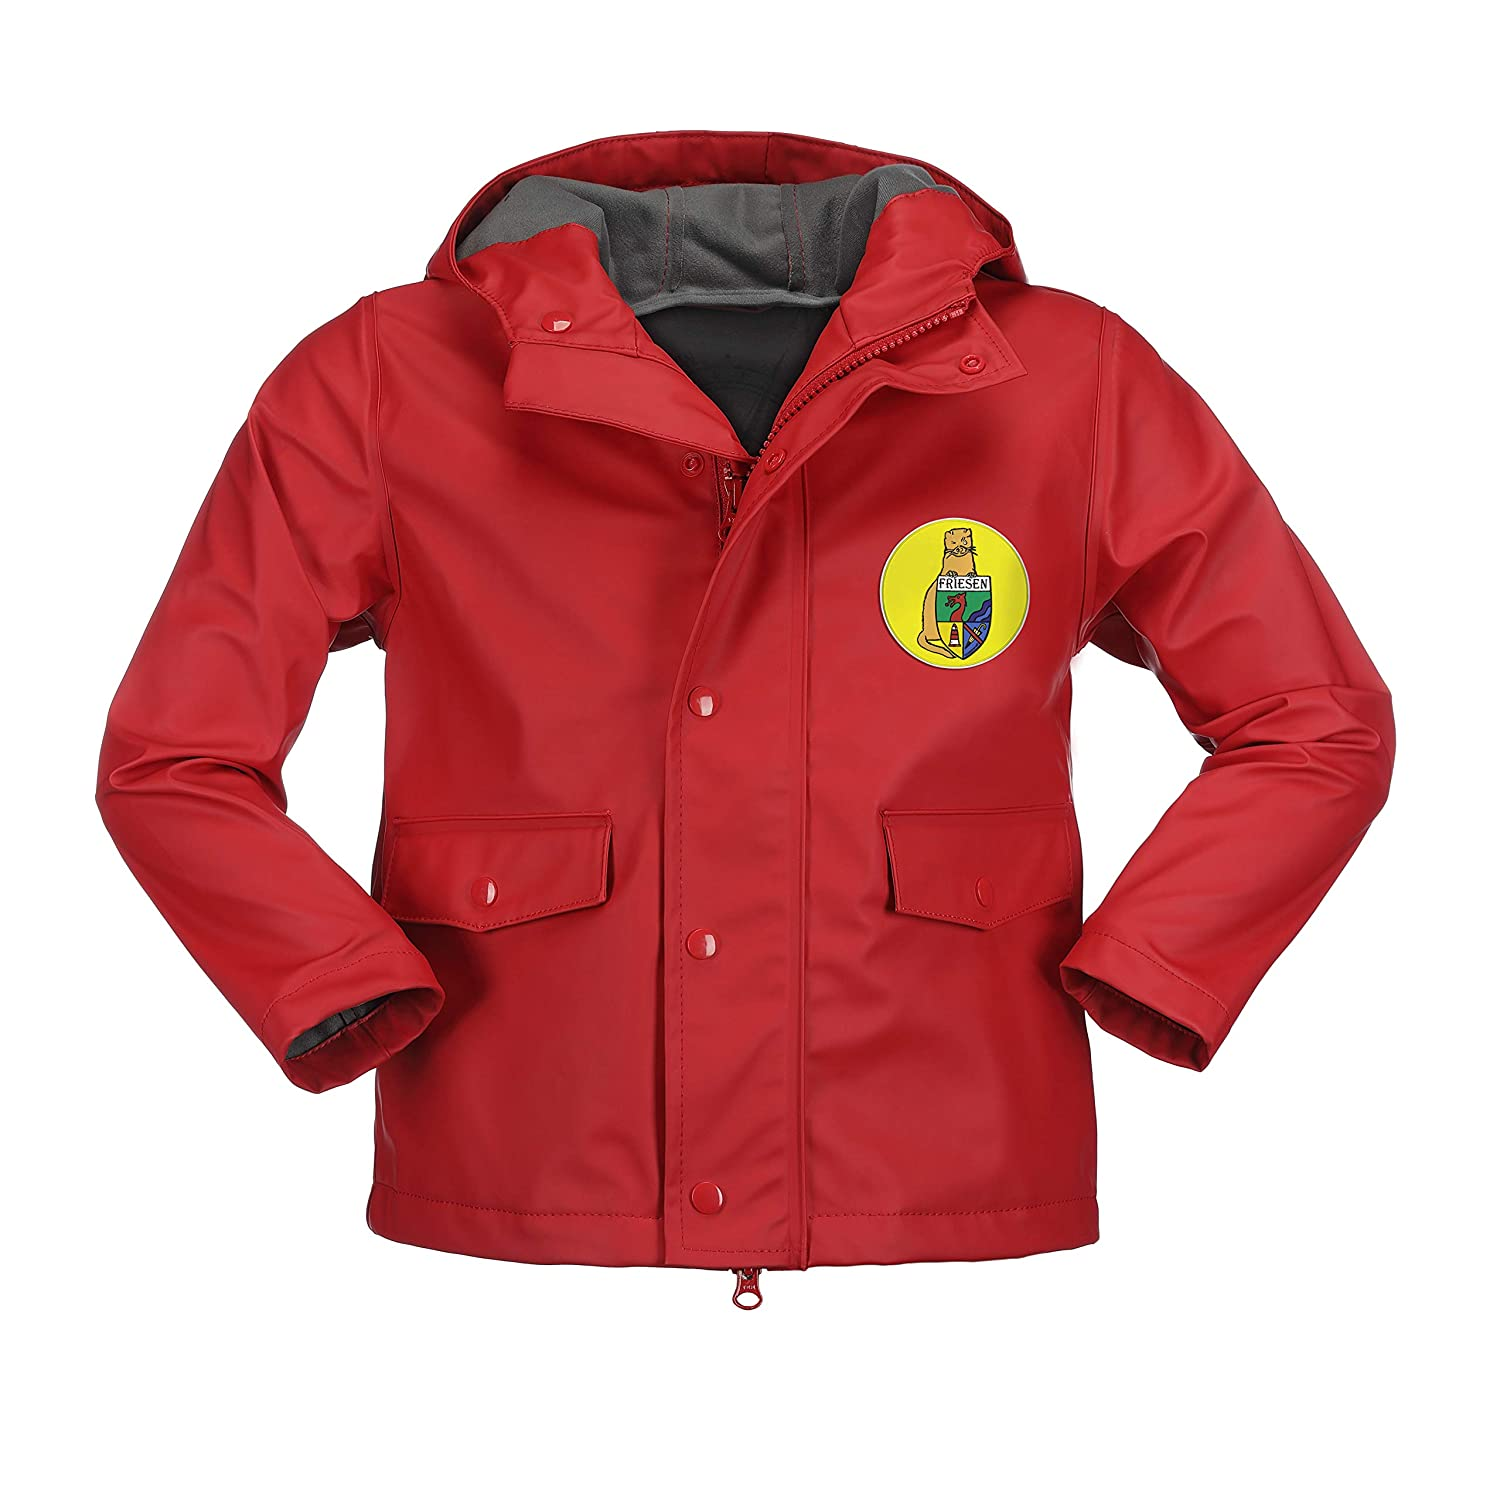 Kirschrouge Mit Separatem Logopatch In jaune 98 104 cm Friesennerz - Manteau imperméable - Fille Jaune Jaune